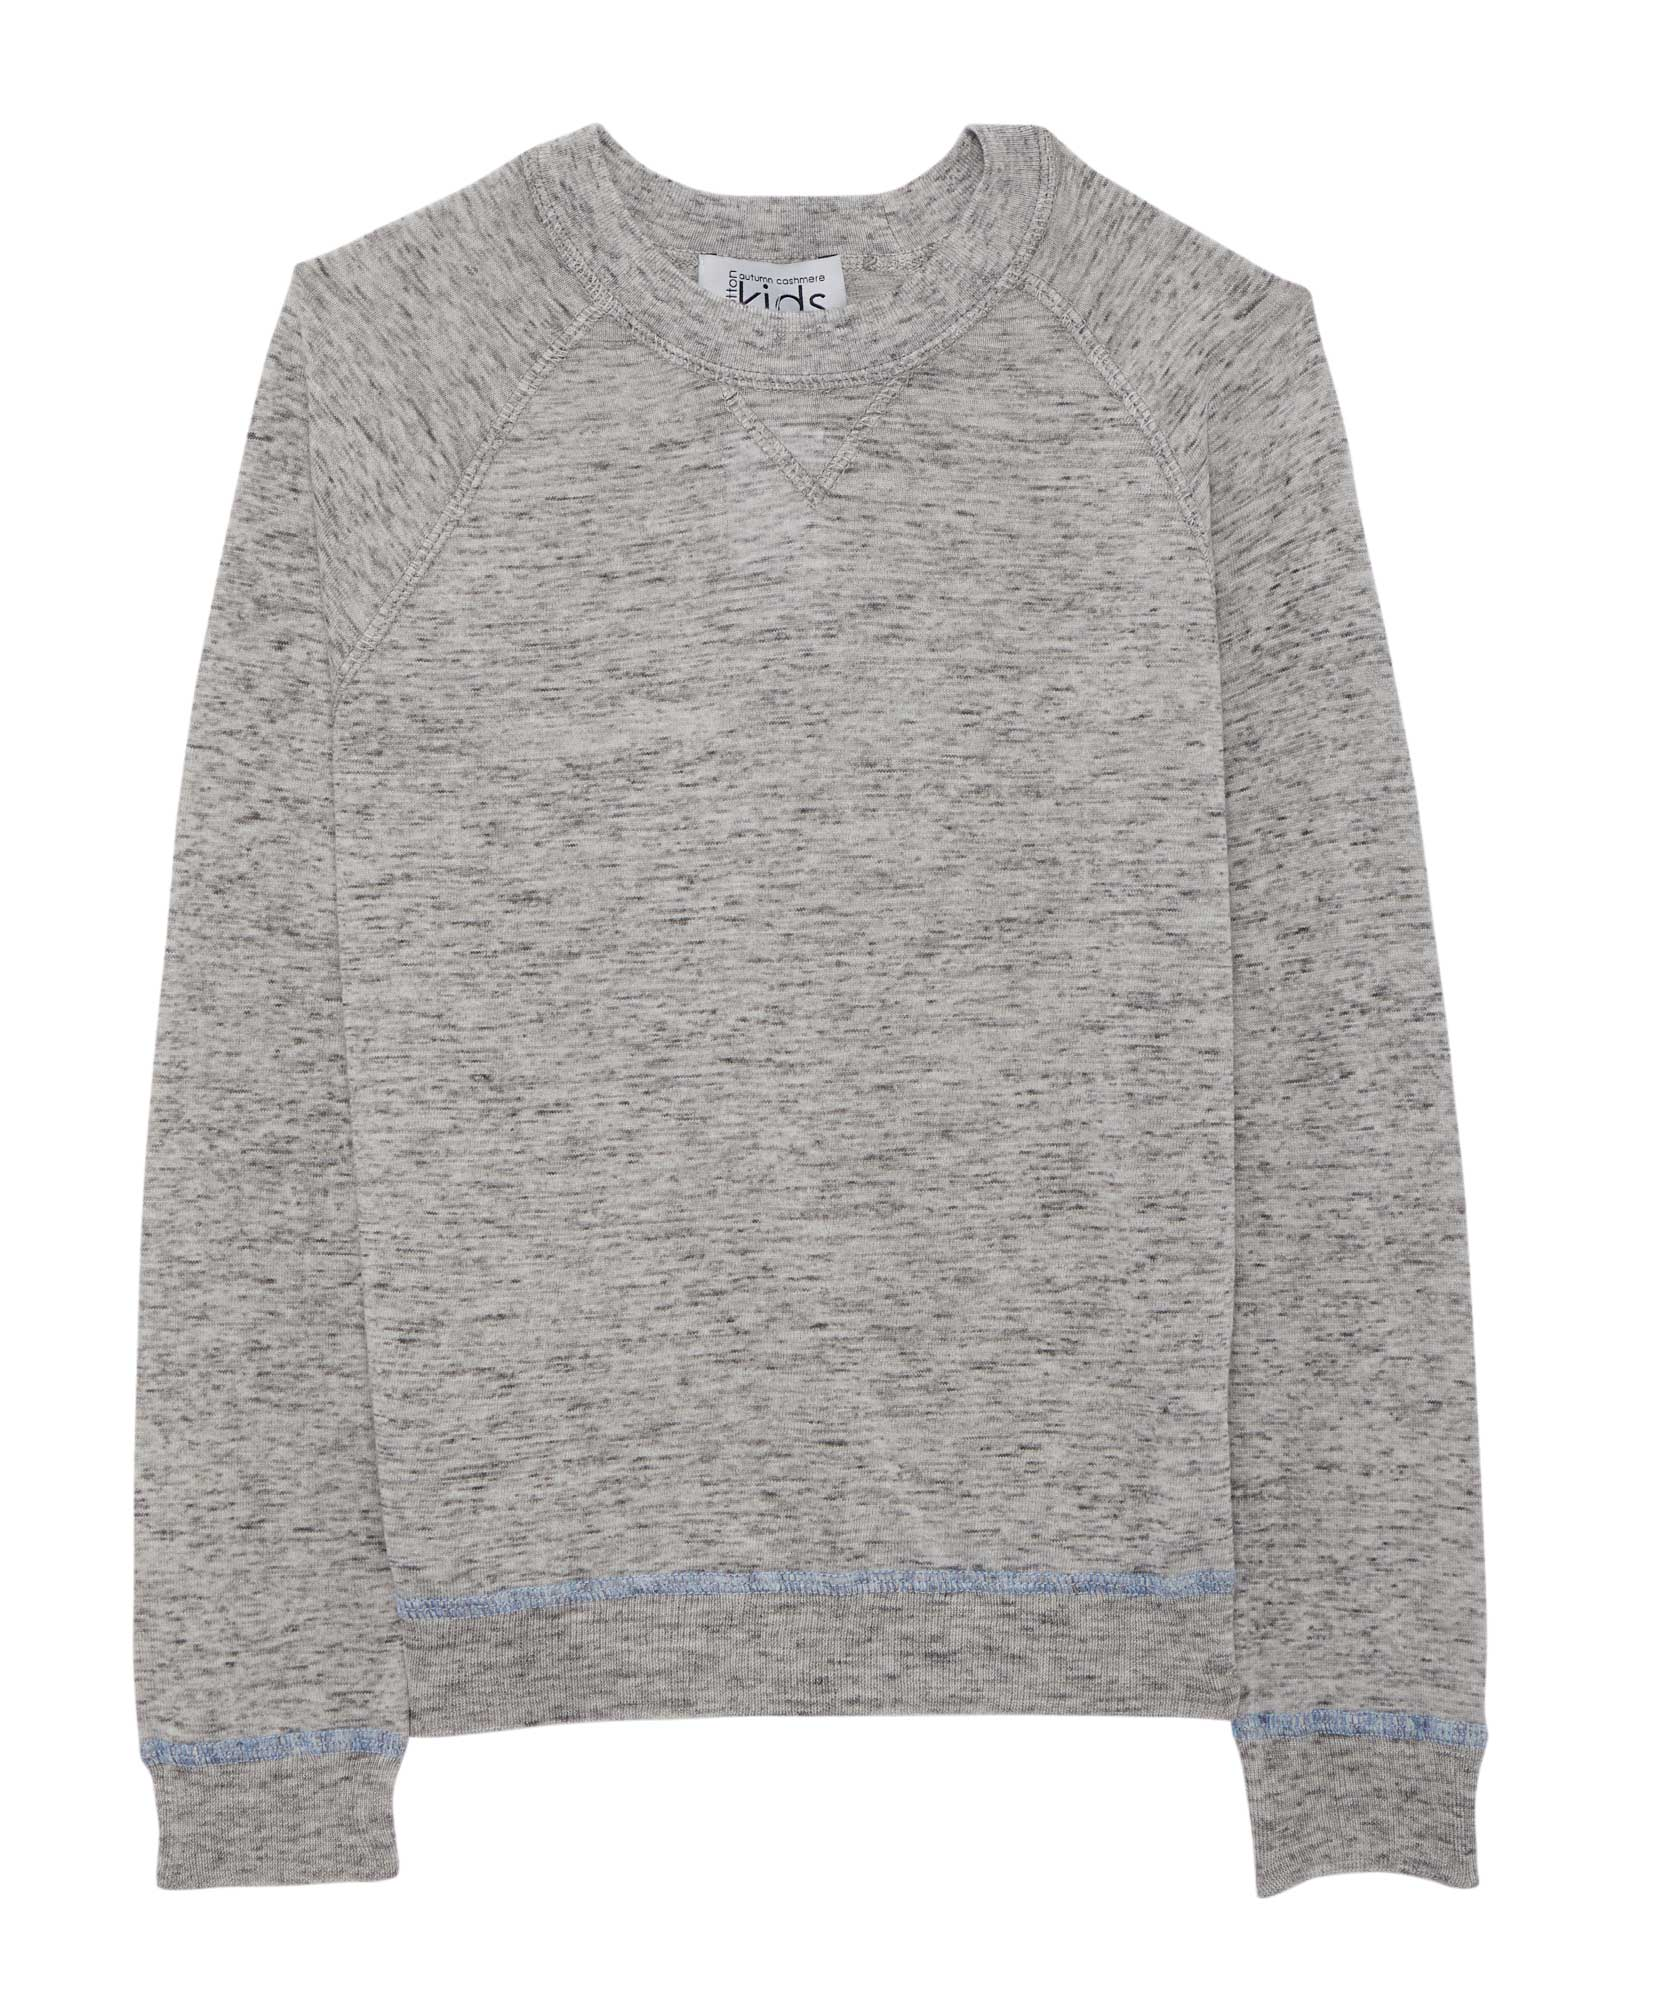 Autumn Cashmere Raglan Crew Sweater